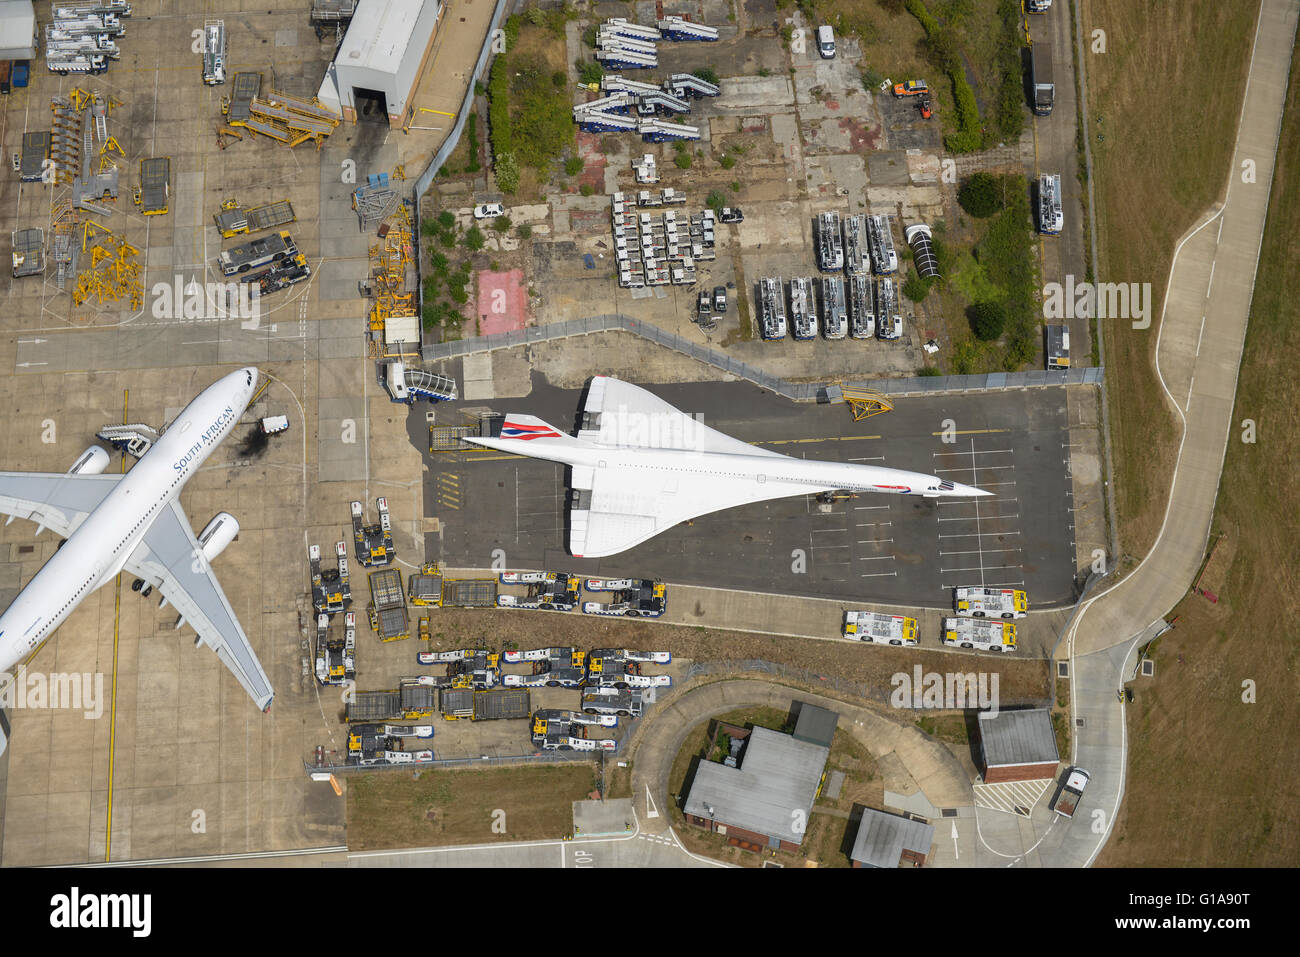 An aerial view of a Concorde at Heathrow Airport - Stock Image